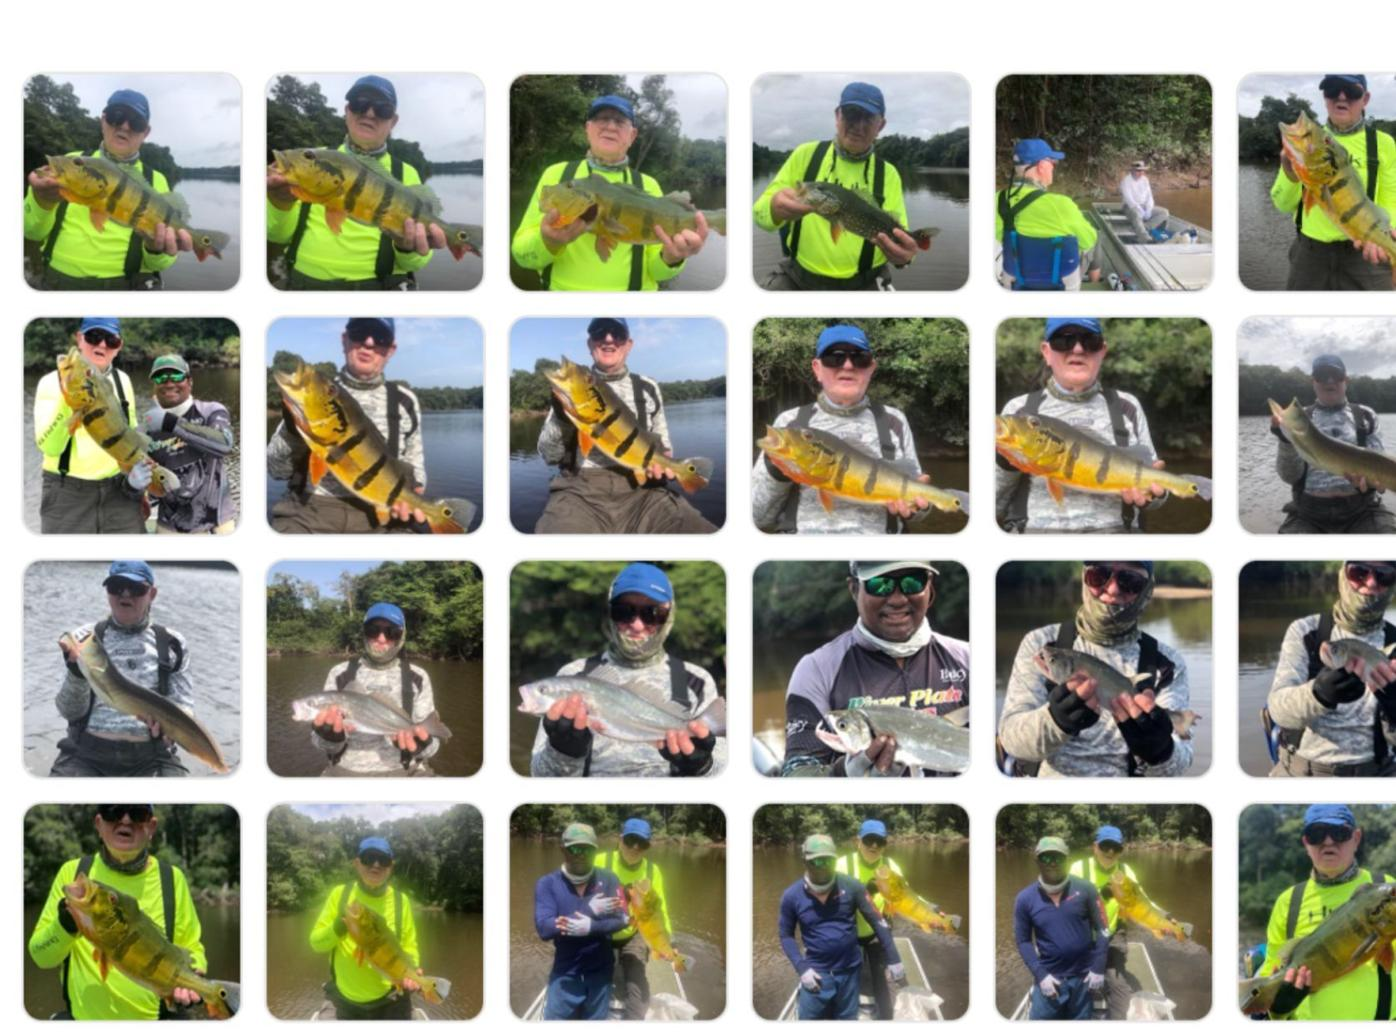 A montage of fishing photos from Anthony Sulkevich's trip to Brazil